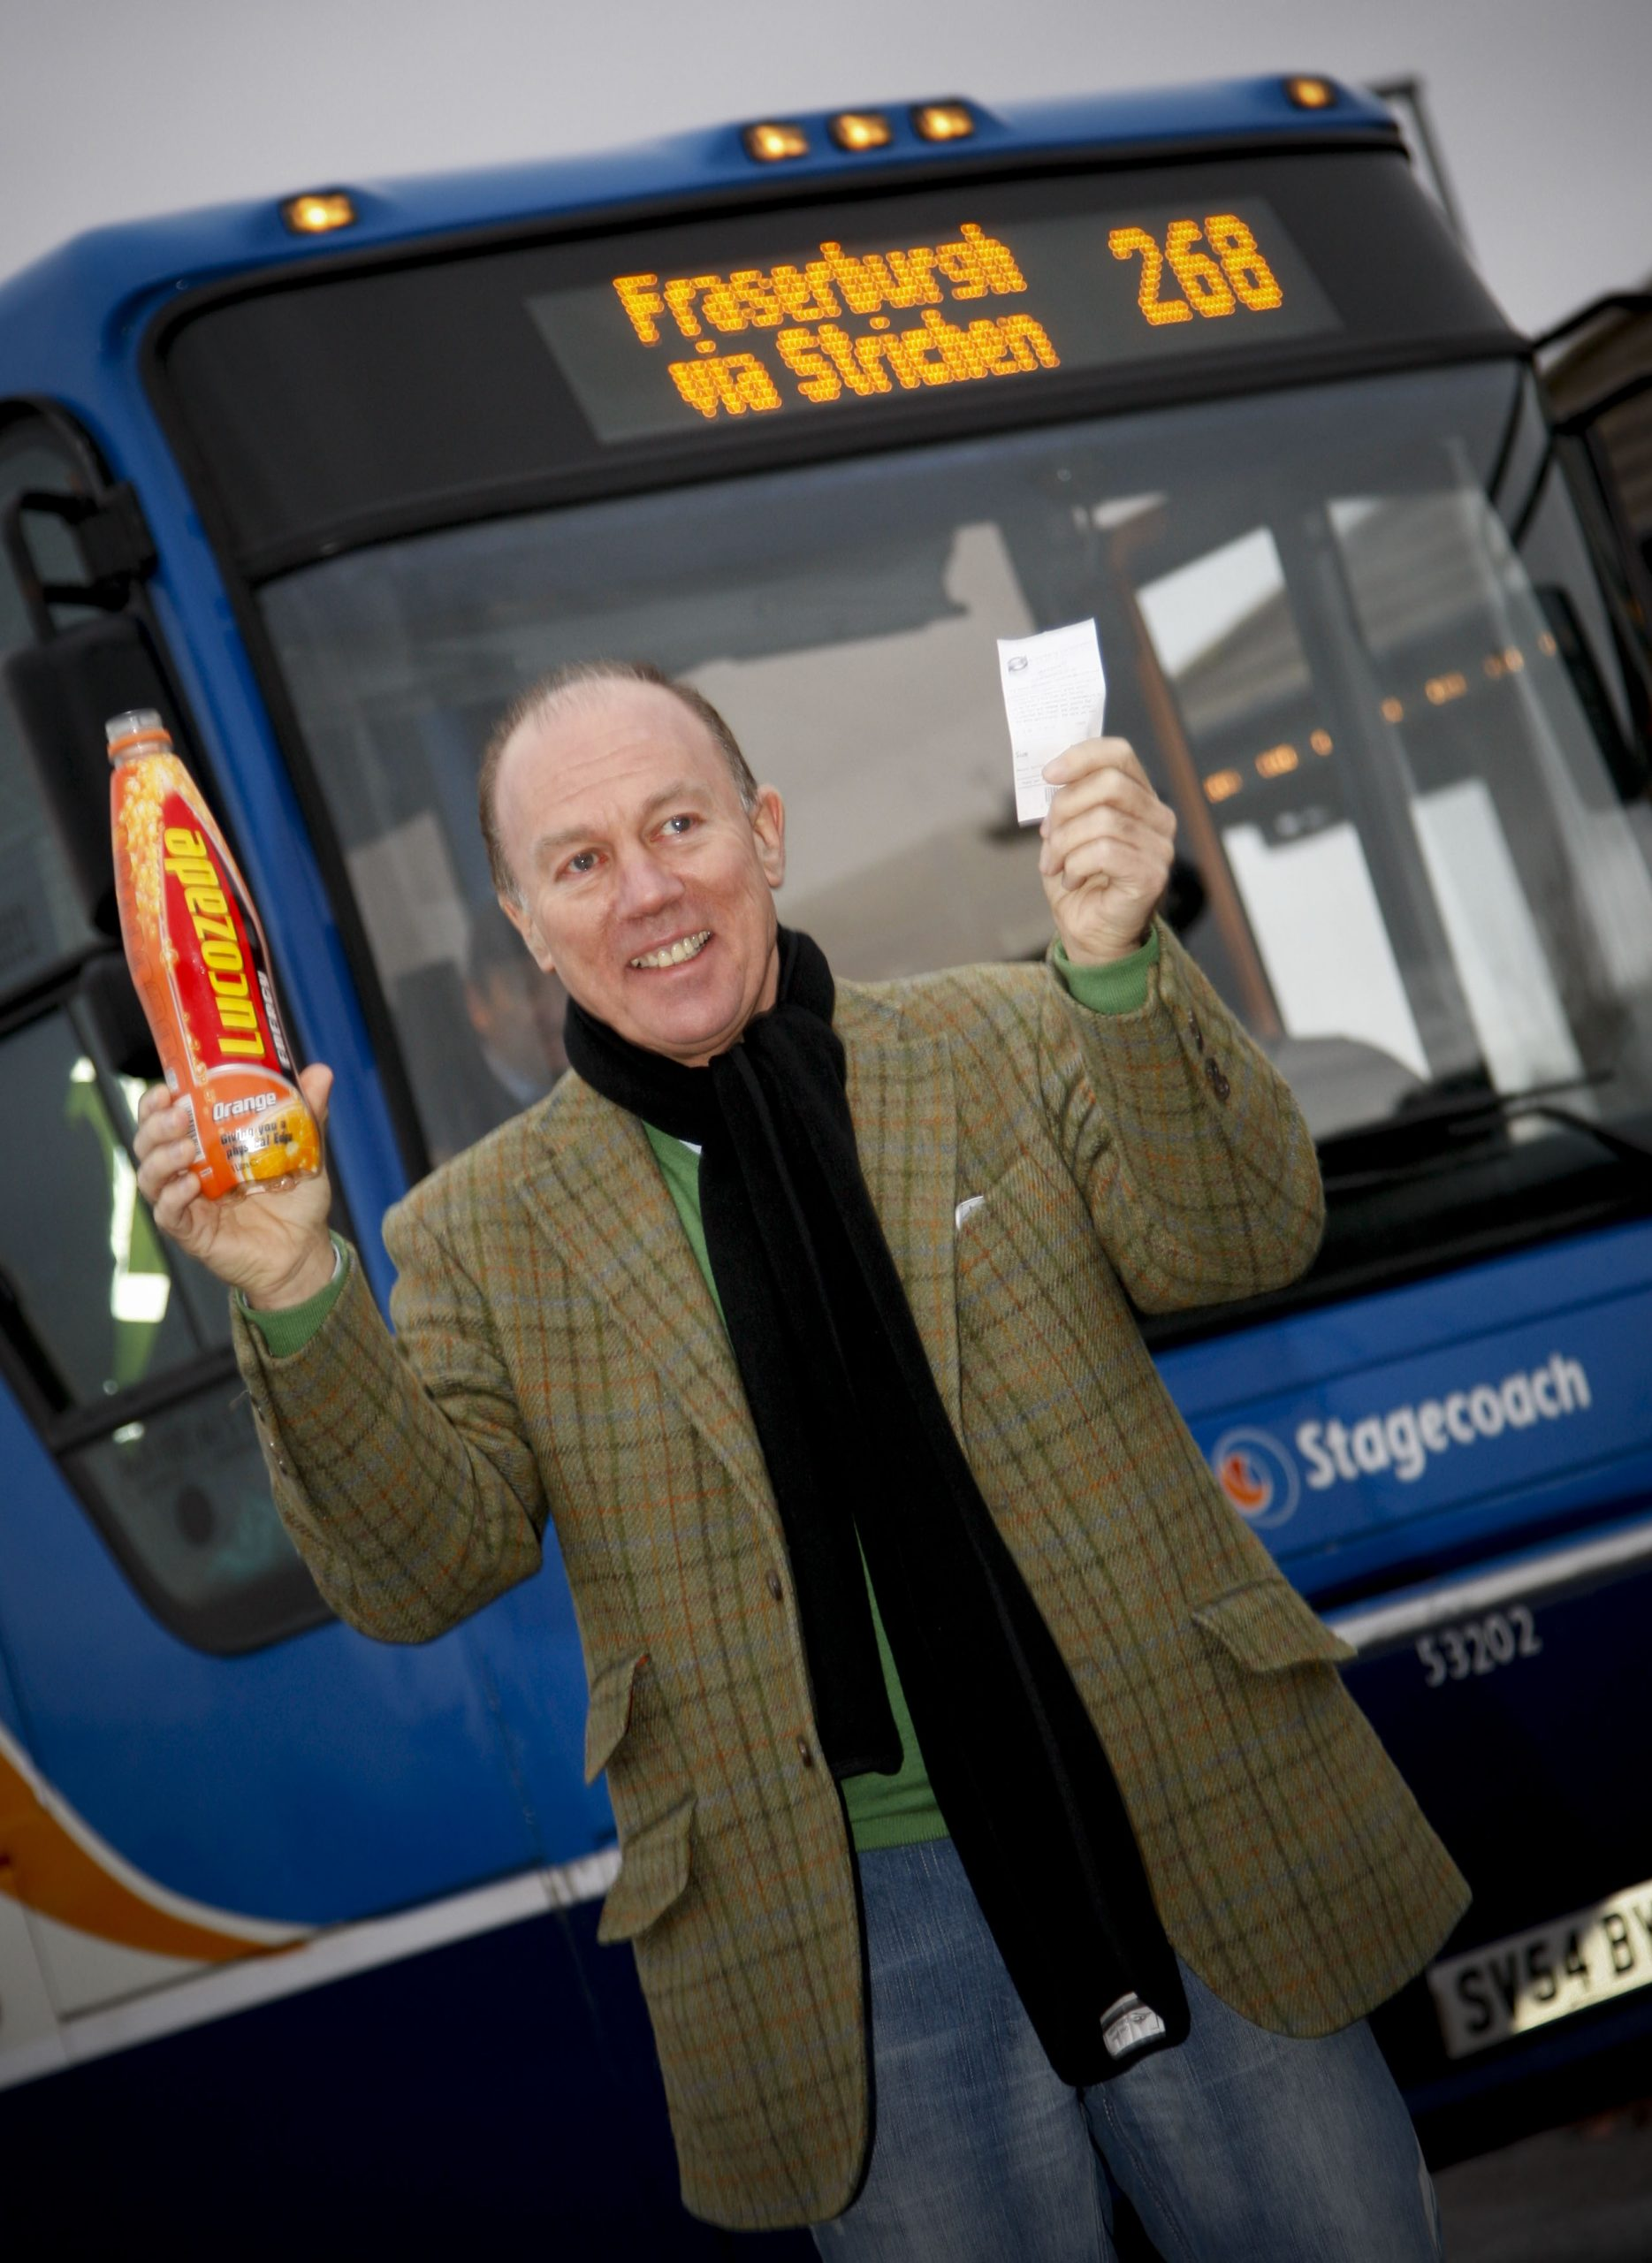 THE LAUNCH OF SCOTLANDS' FIRST REVERSE VENDING MACHINE